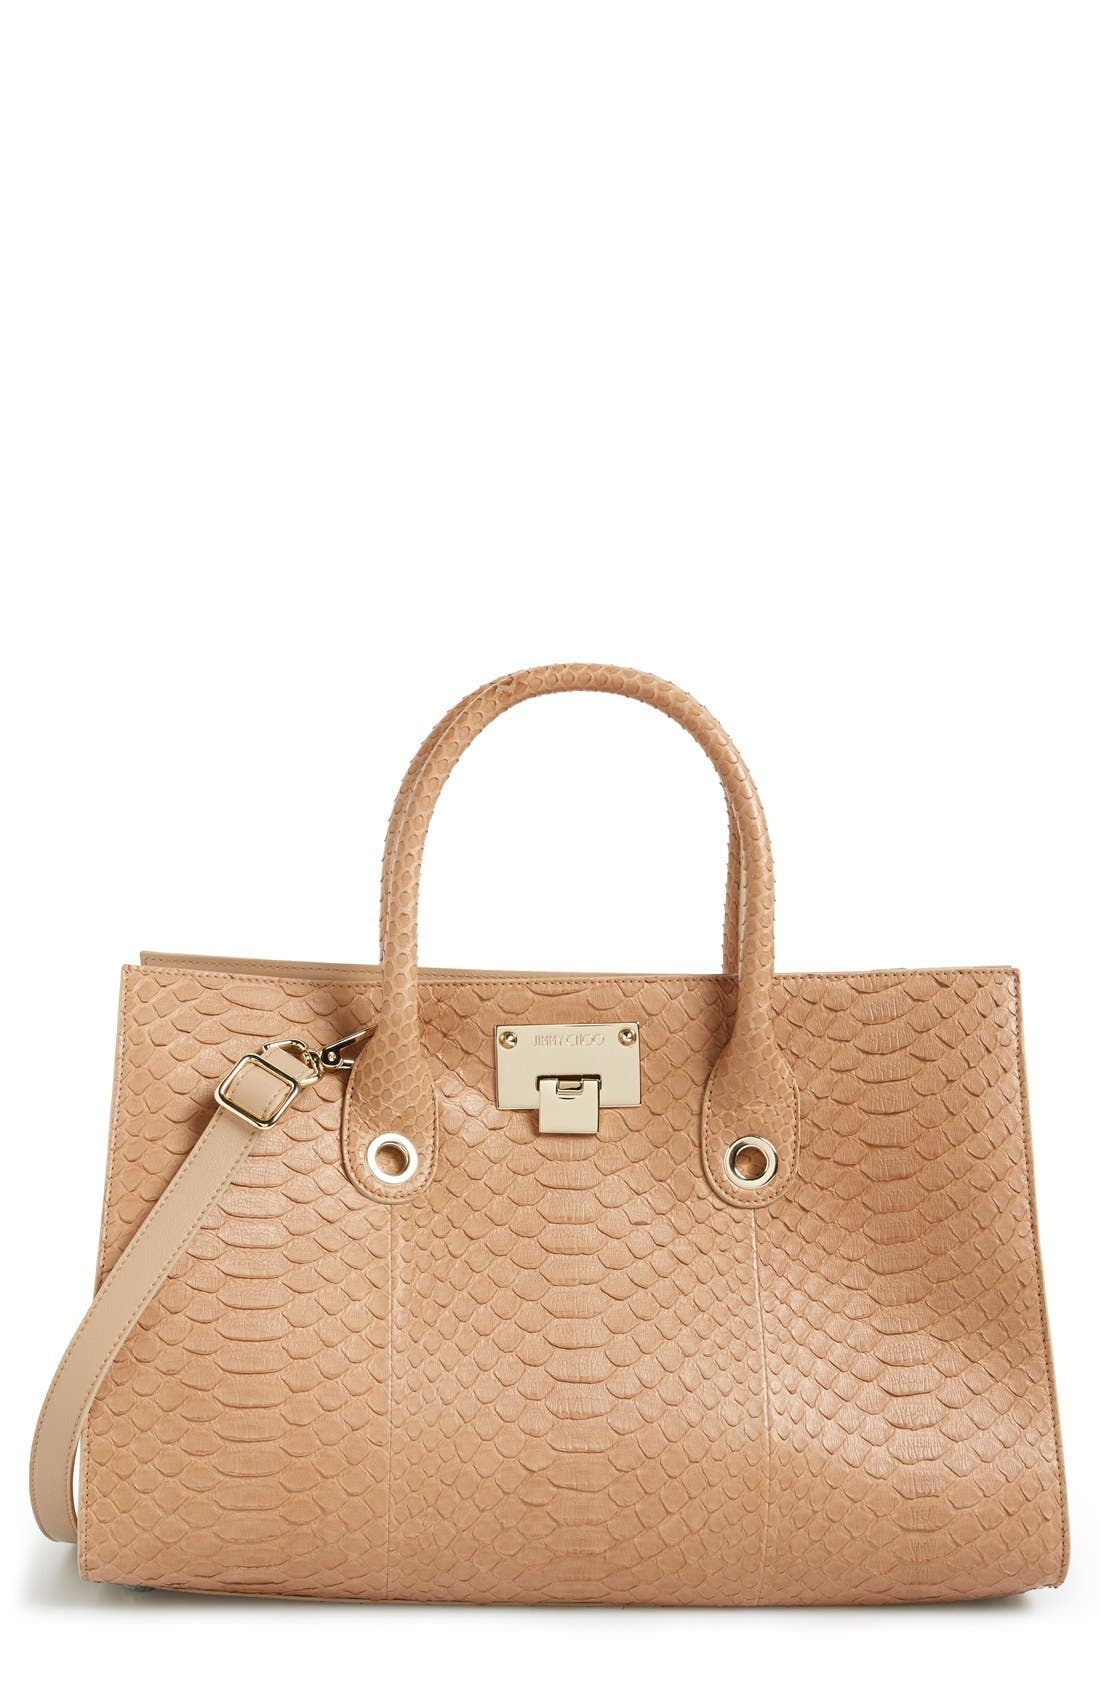 Main Image - Jimmy Choo 'Riley' Genuine Python Tote